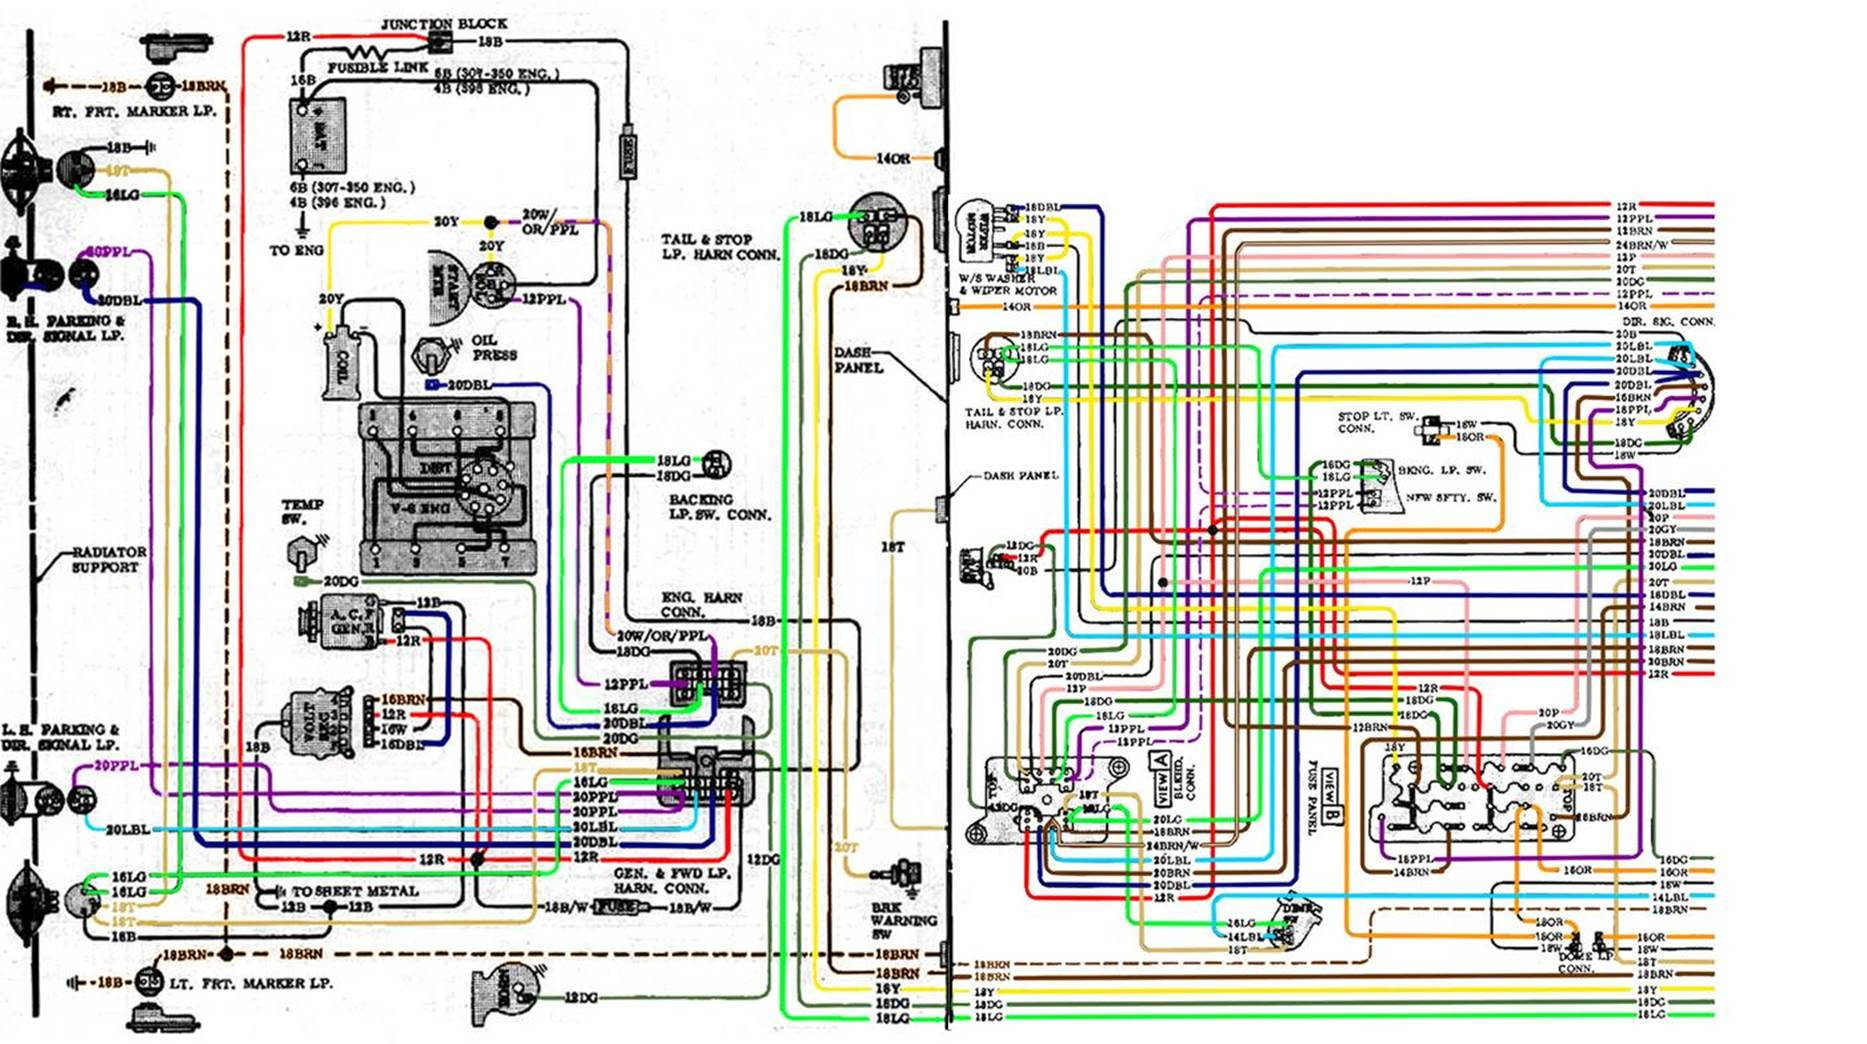 image002 gm wiring diagrams gm wiring diagrams online \u2022 wiring diagrams j Dodge Trailer Wiring Colors at edmiracle.co